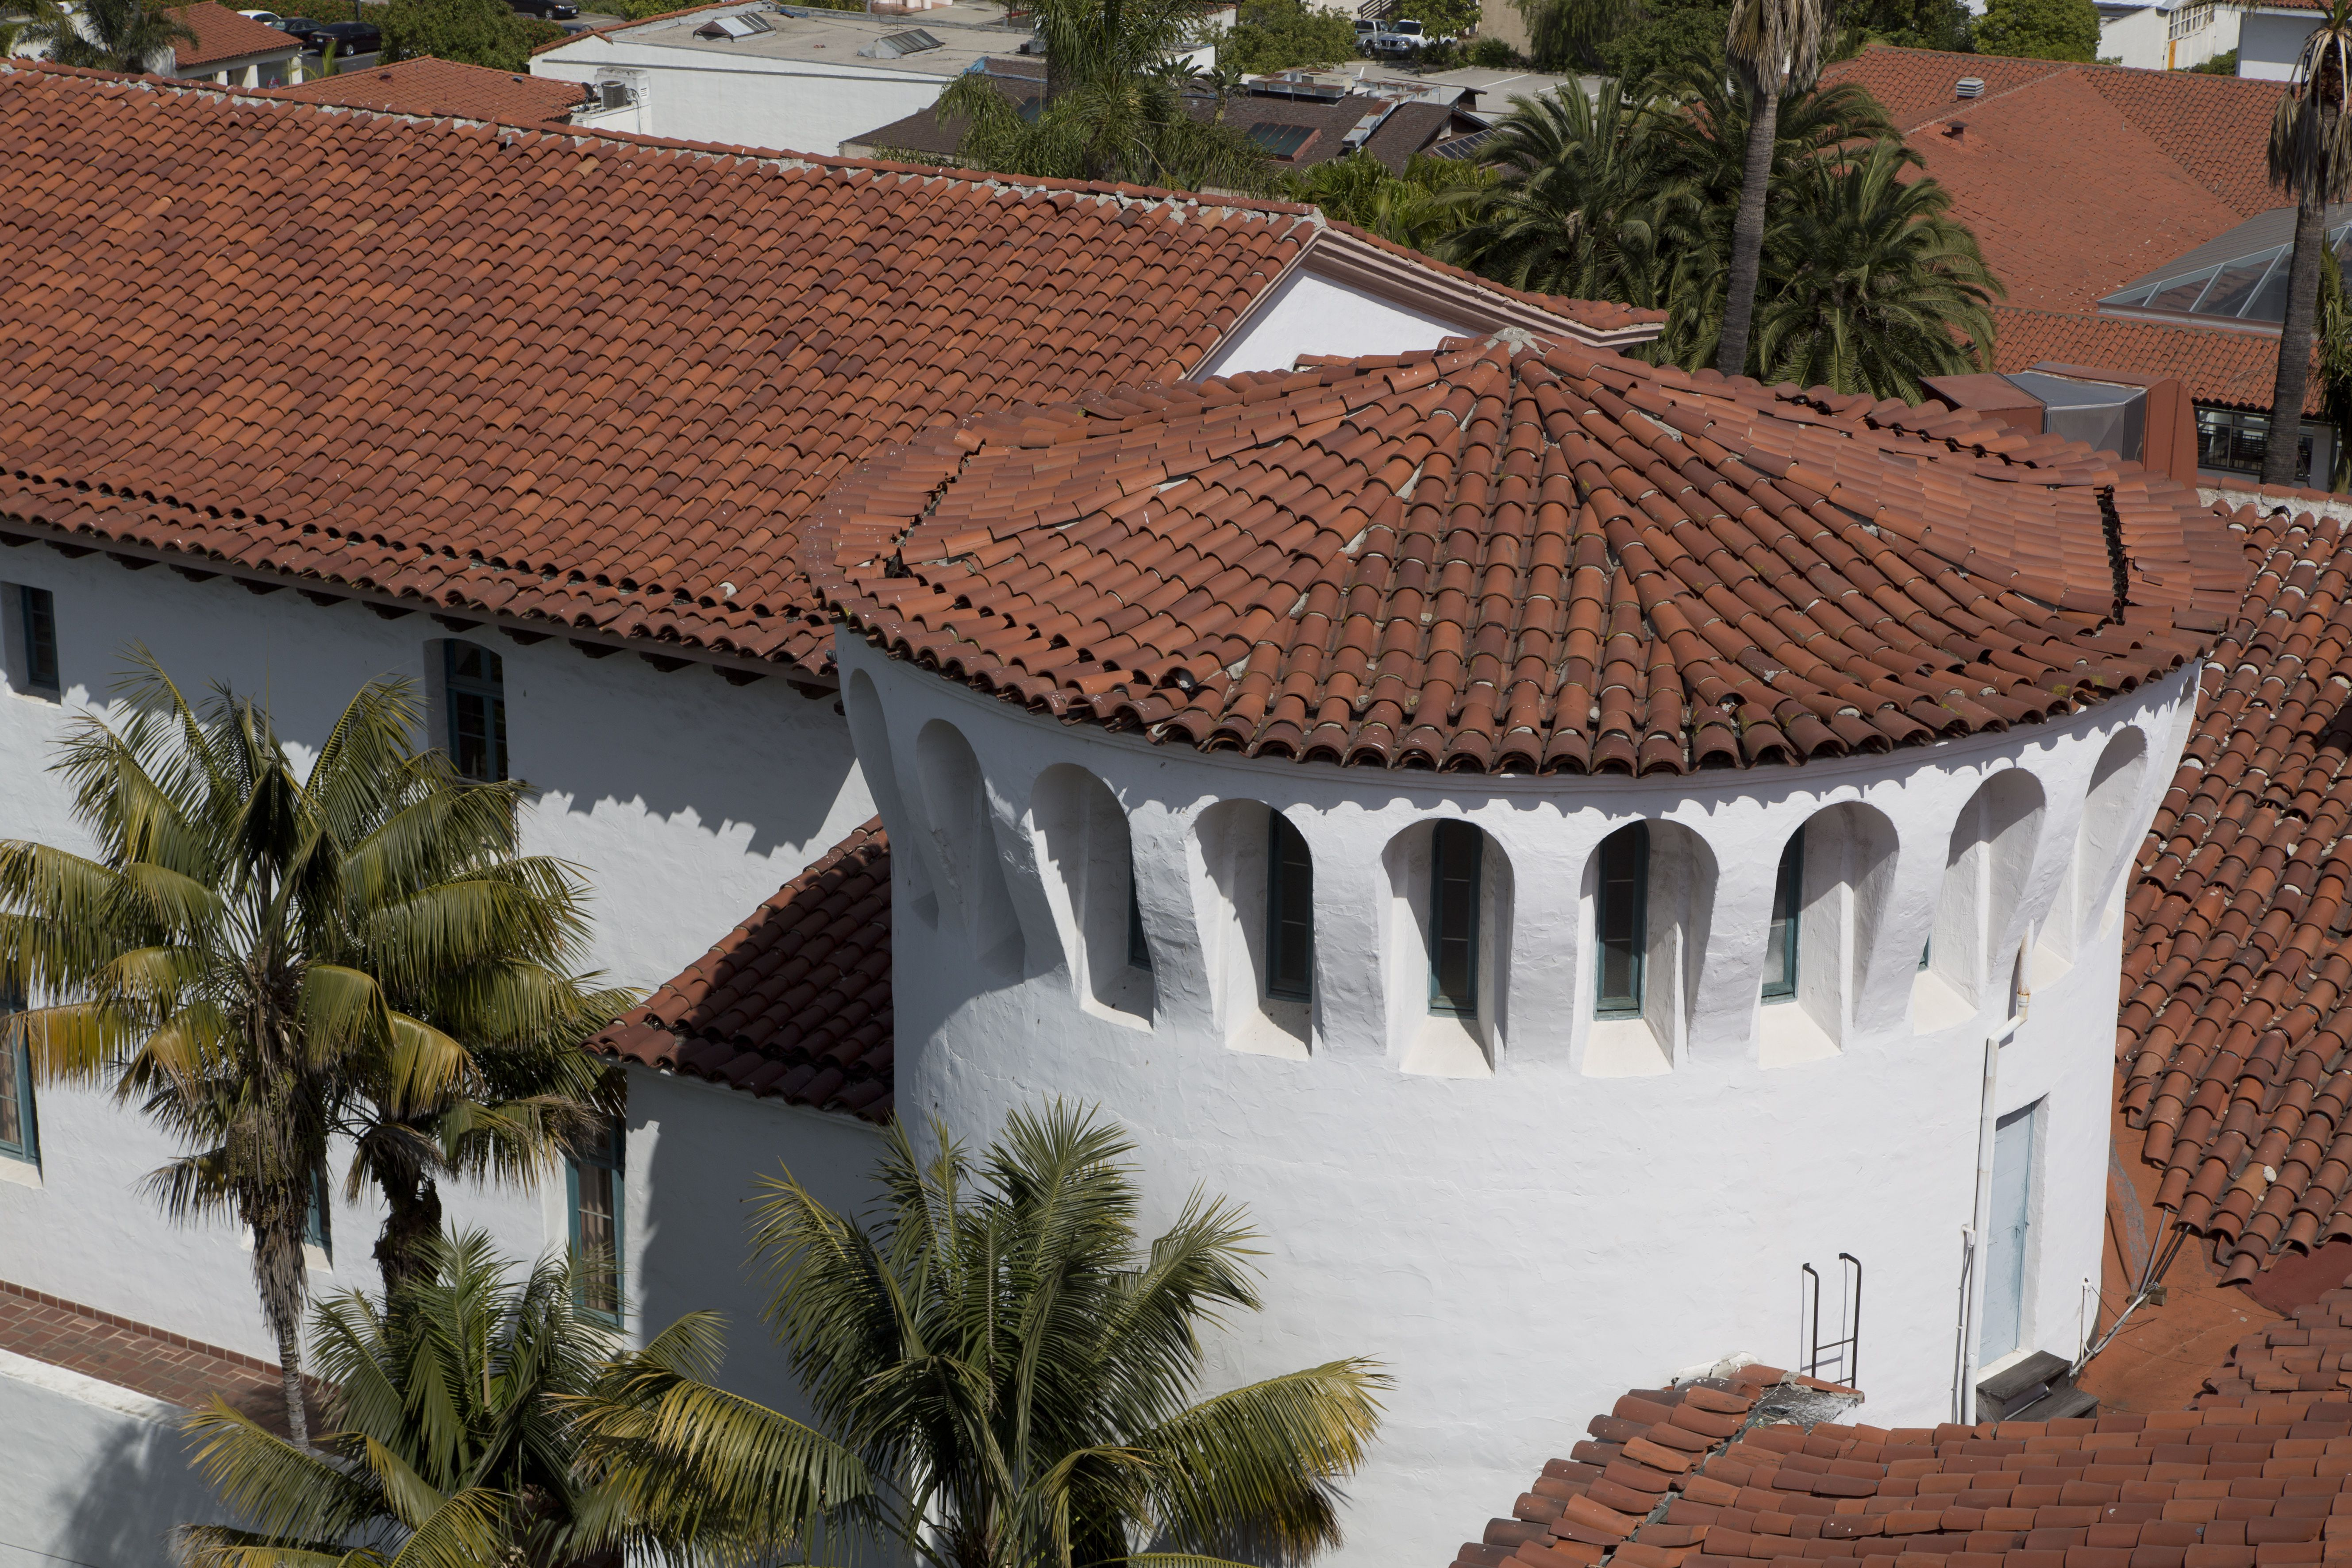 aerial view of red tile roof, gable and circular, on top of a stucco white building with arched windows